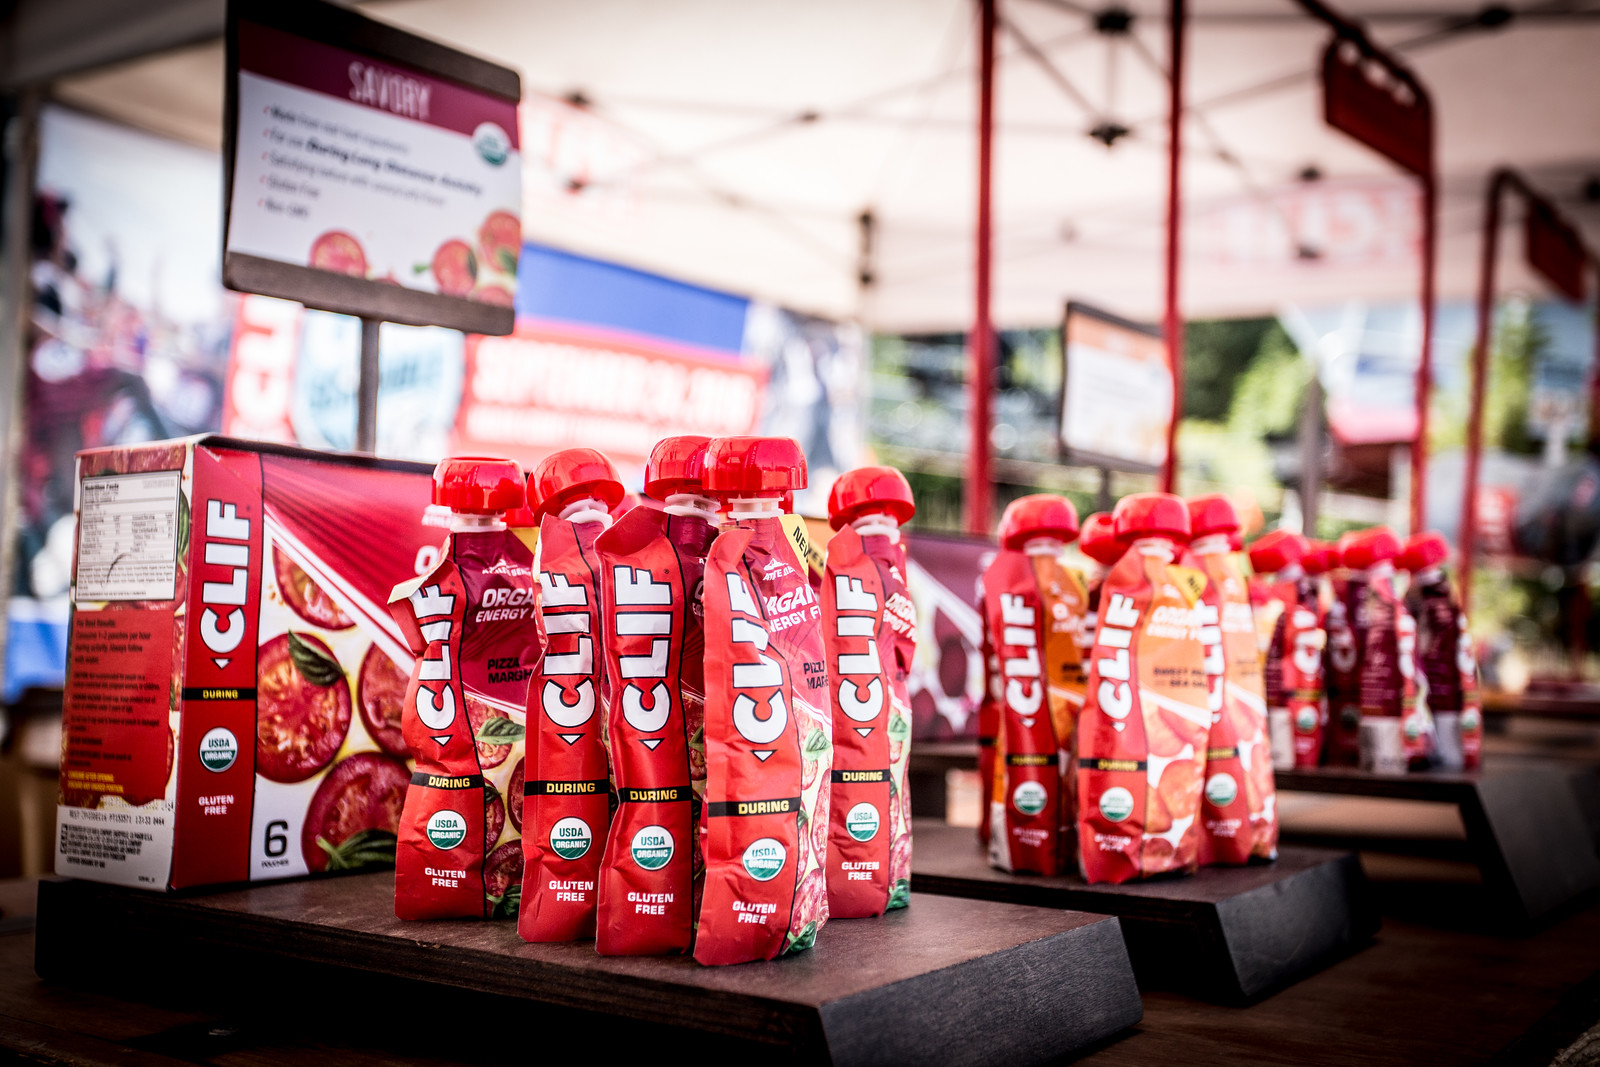 Clif Bar provided a massive amount of product in support of the weekend's racers.